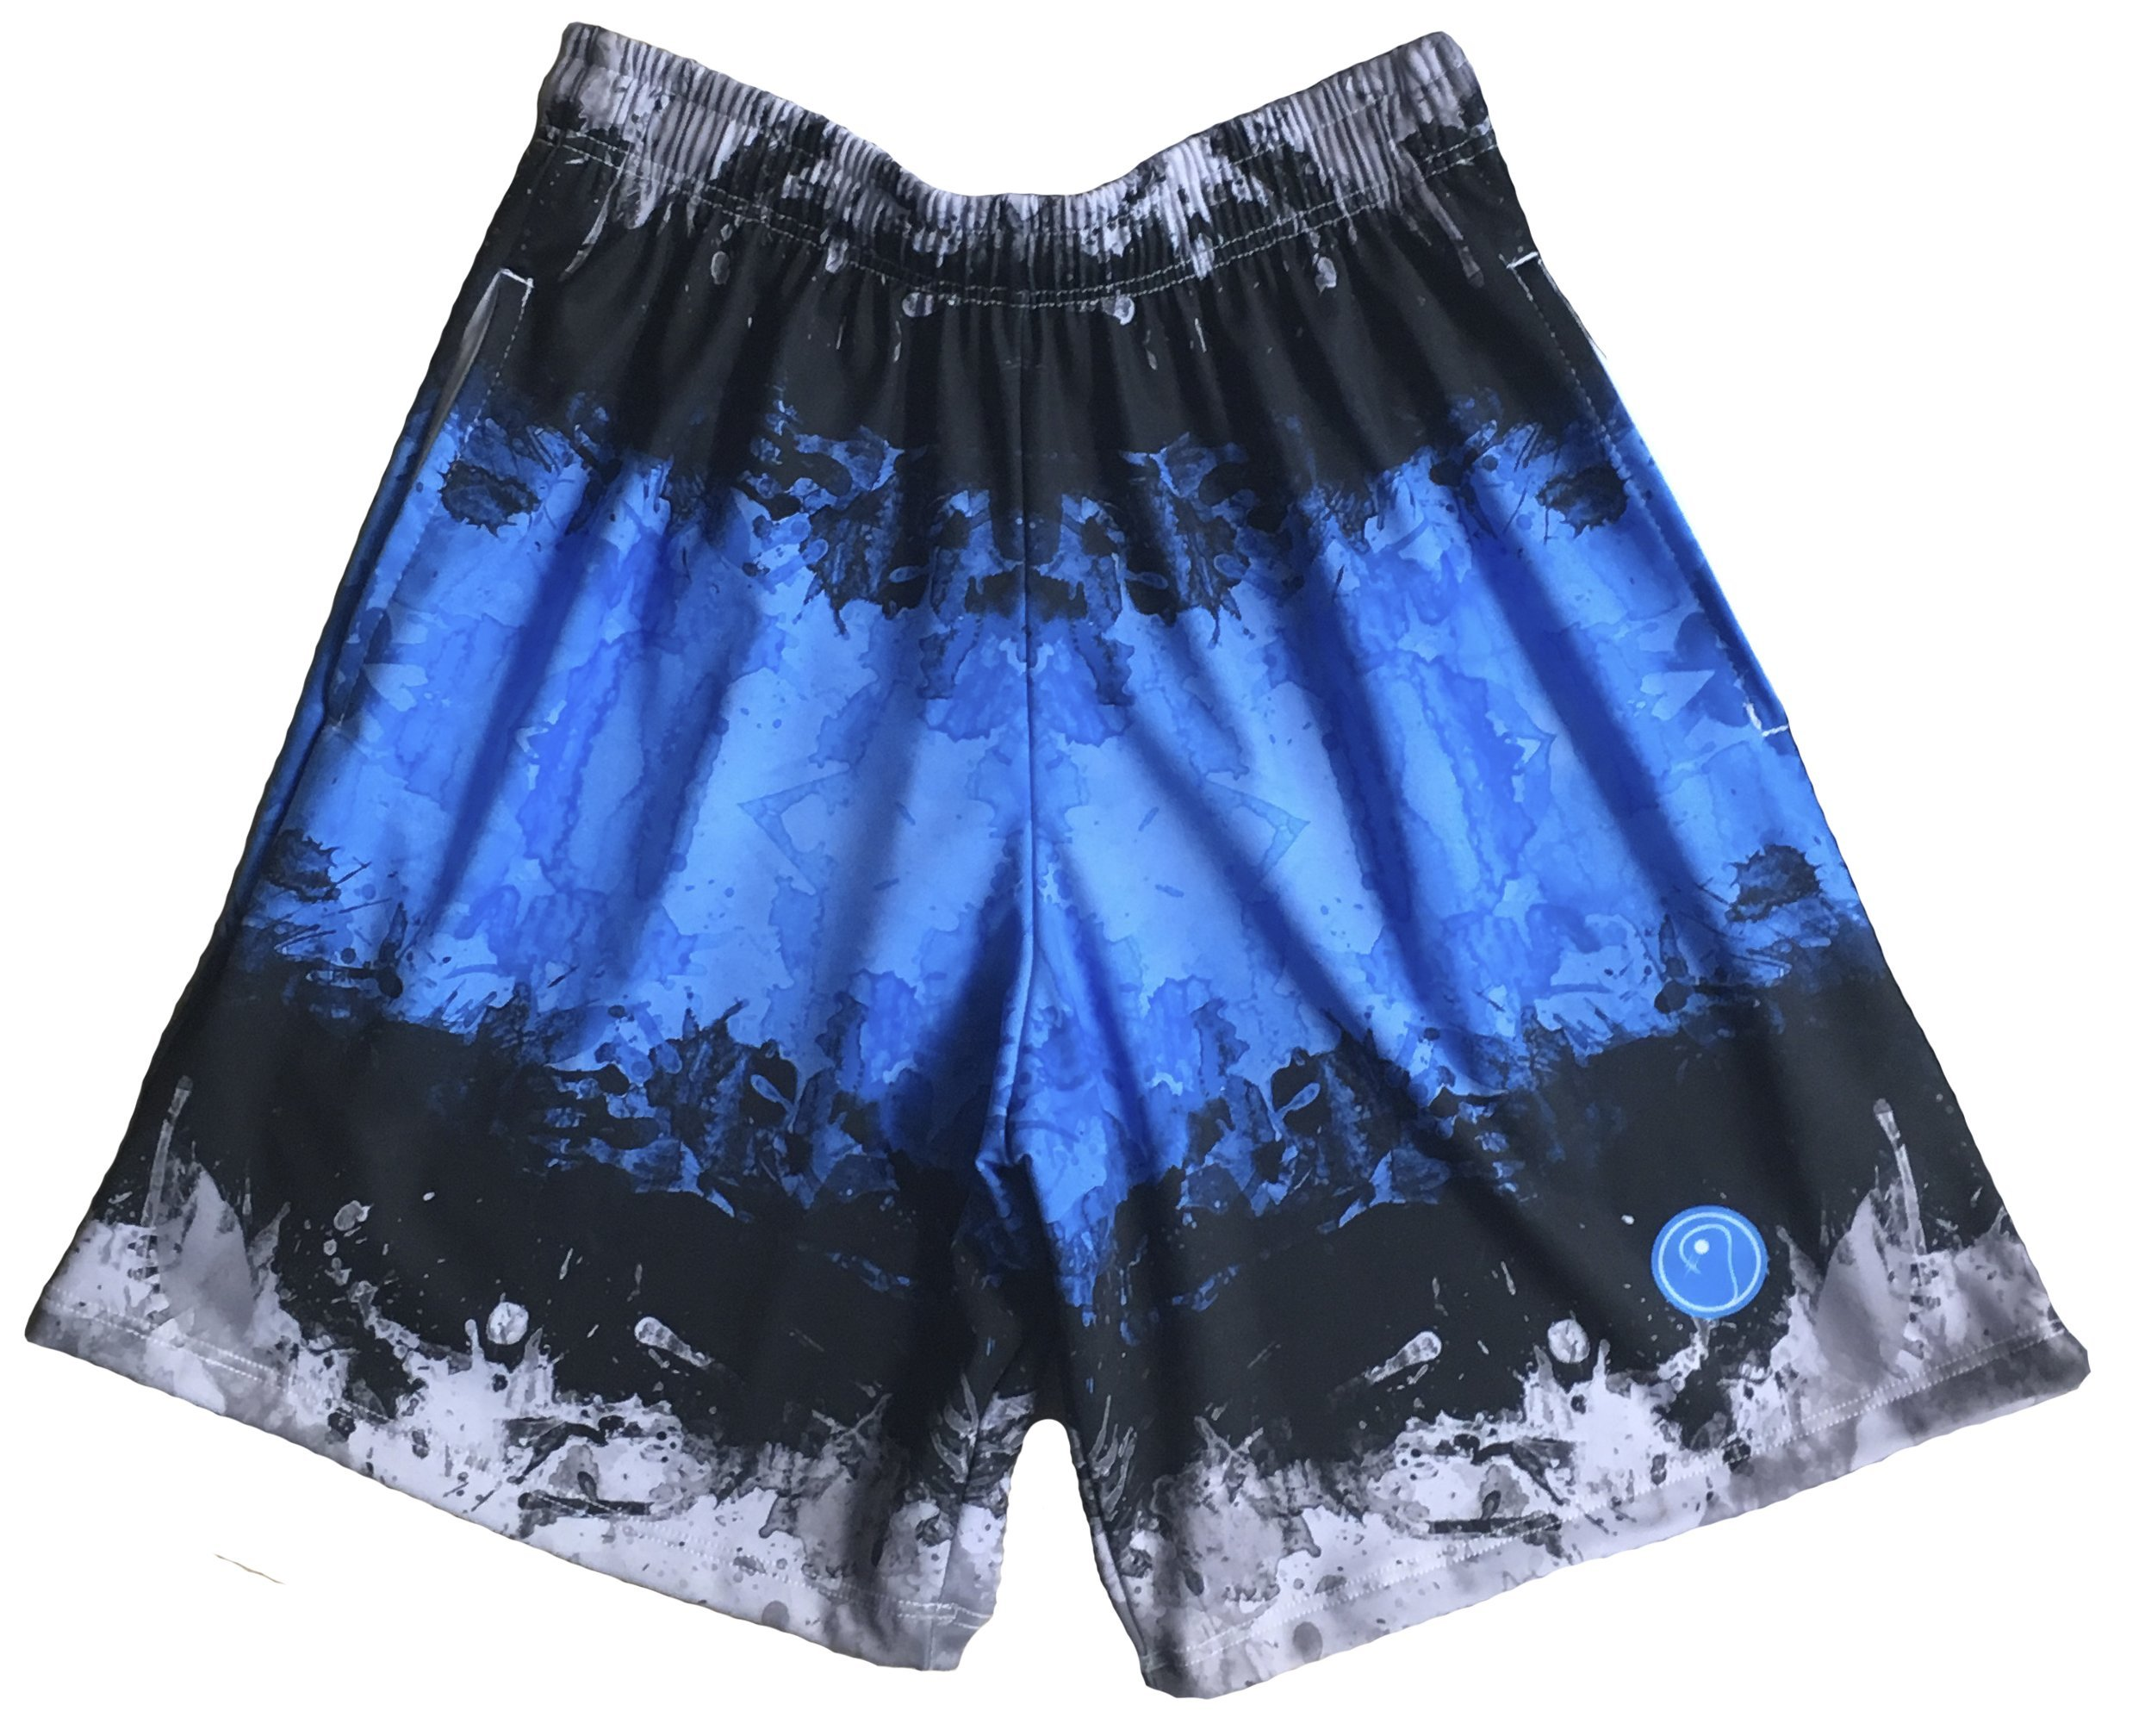 LAX SO HARD Boys Graphic Stripe Lacrosse Shorts, Youth Small